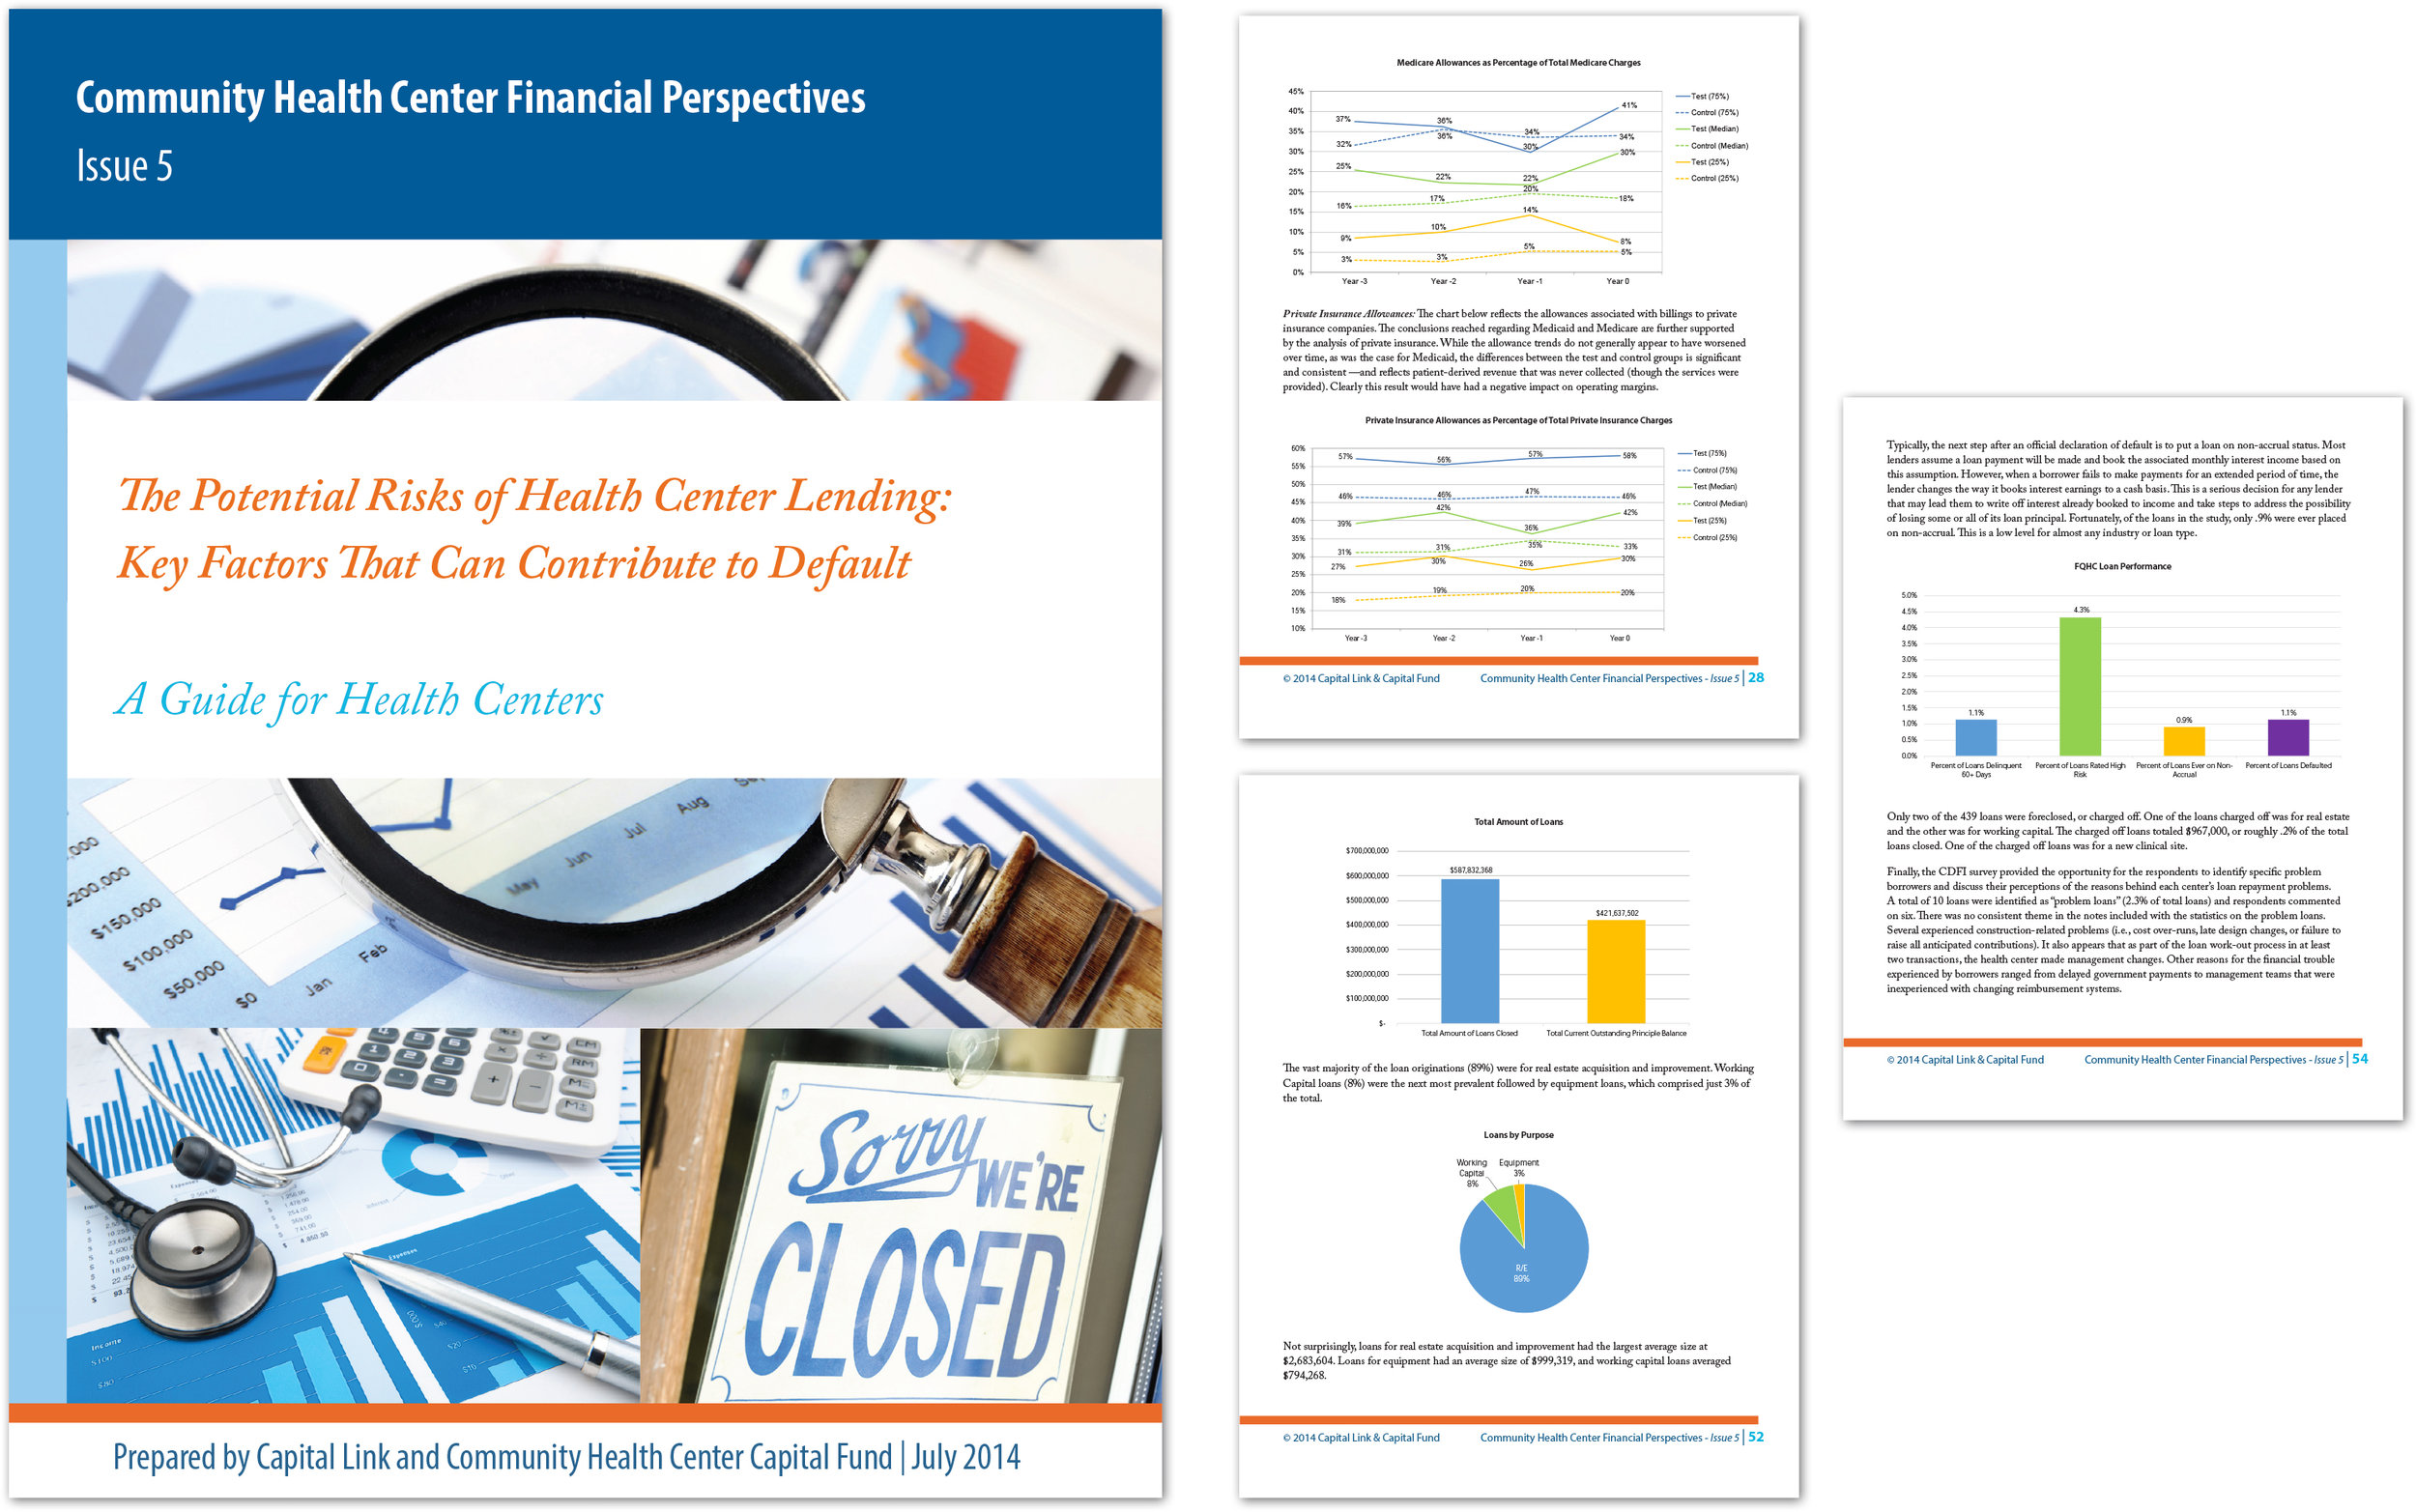 Community-Health-Center-Financial-Perspectives.jpg